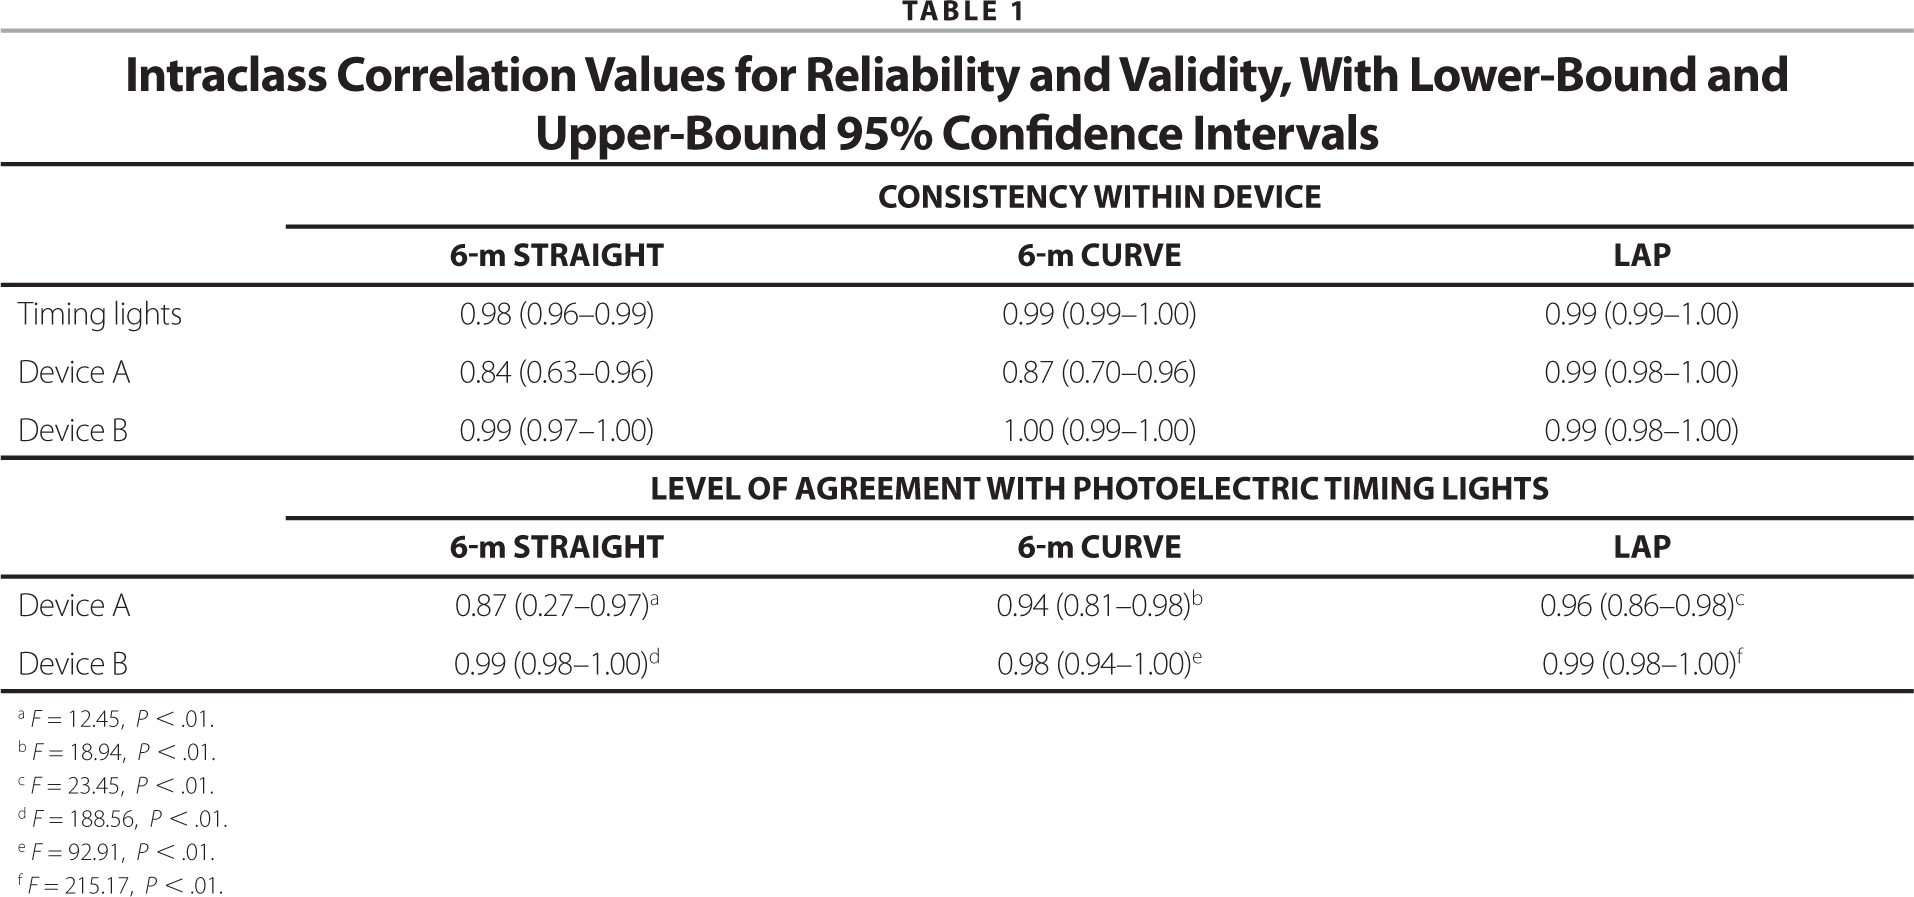 Intraclass Correlation Values for Reliability and Validity, With Lower-Bound and Upper-Bound 95% Confidence Intervals